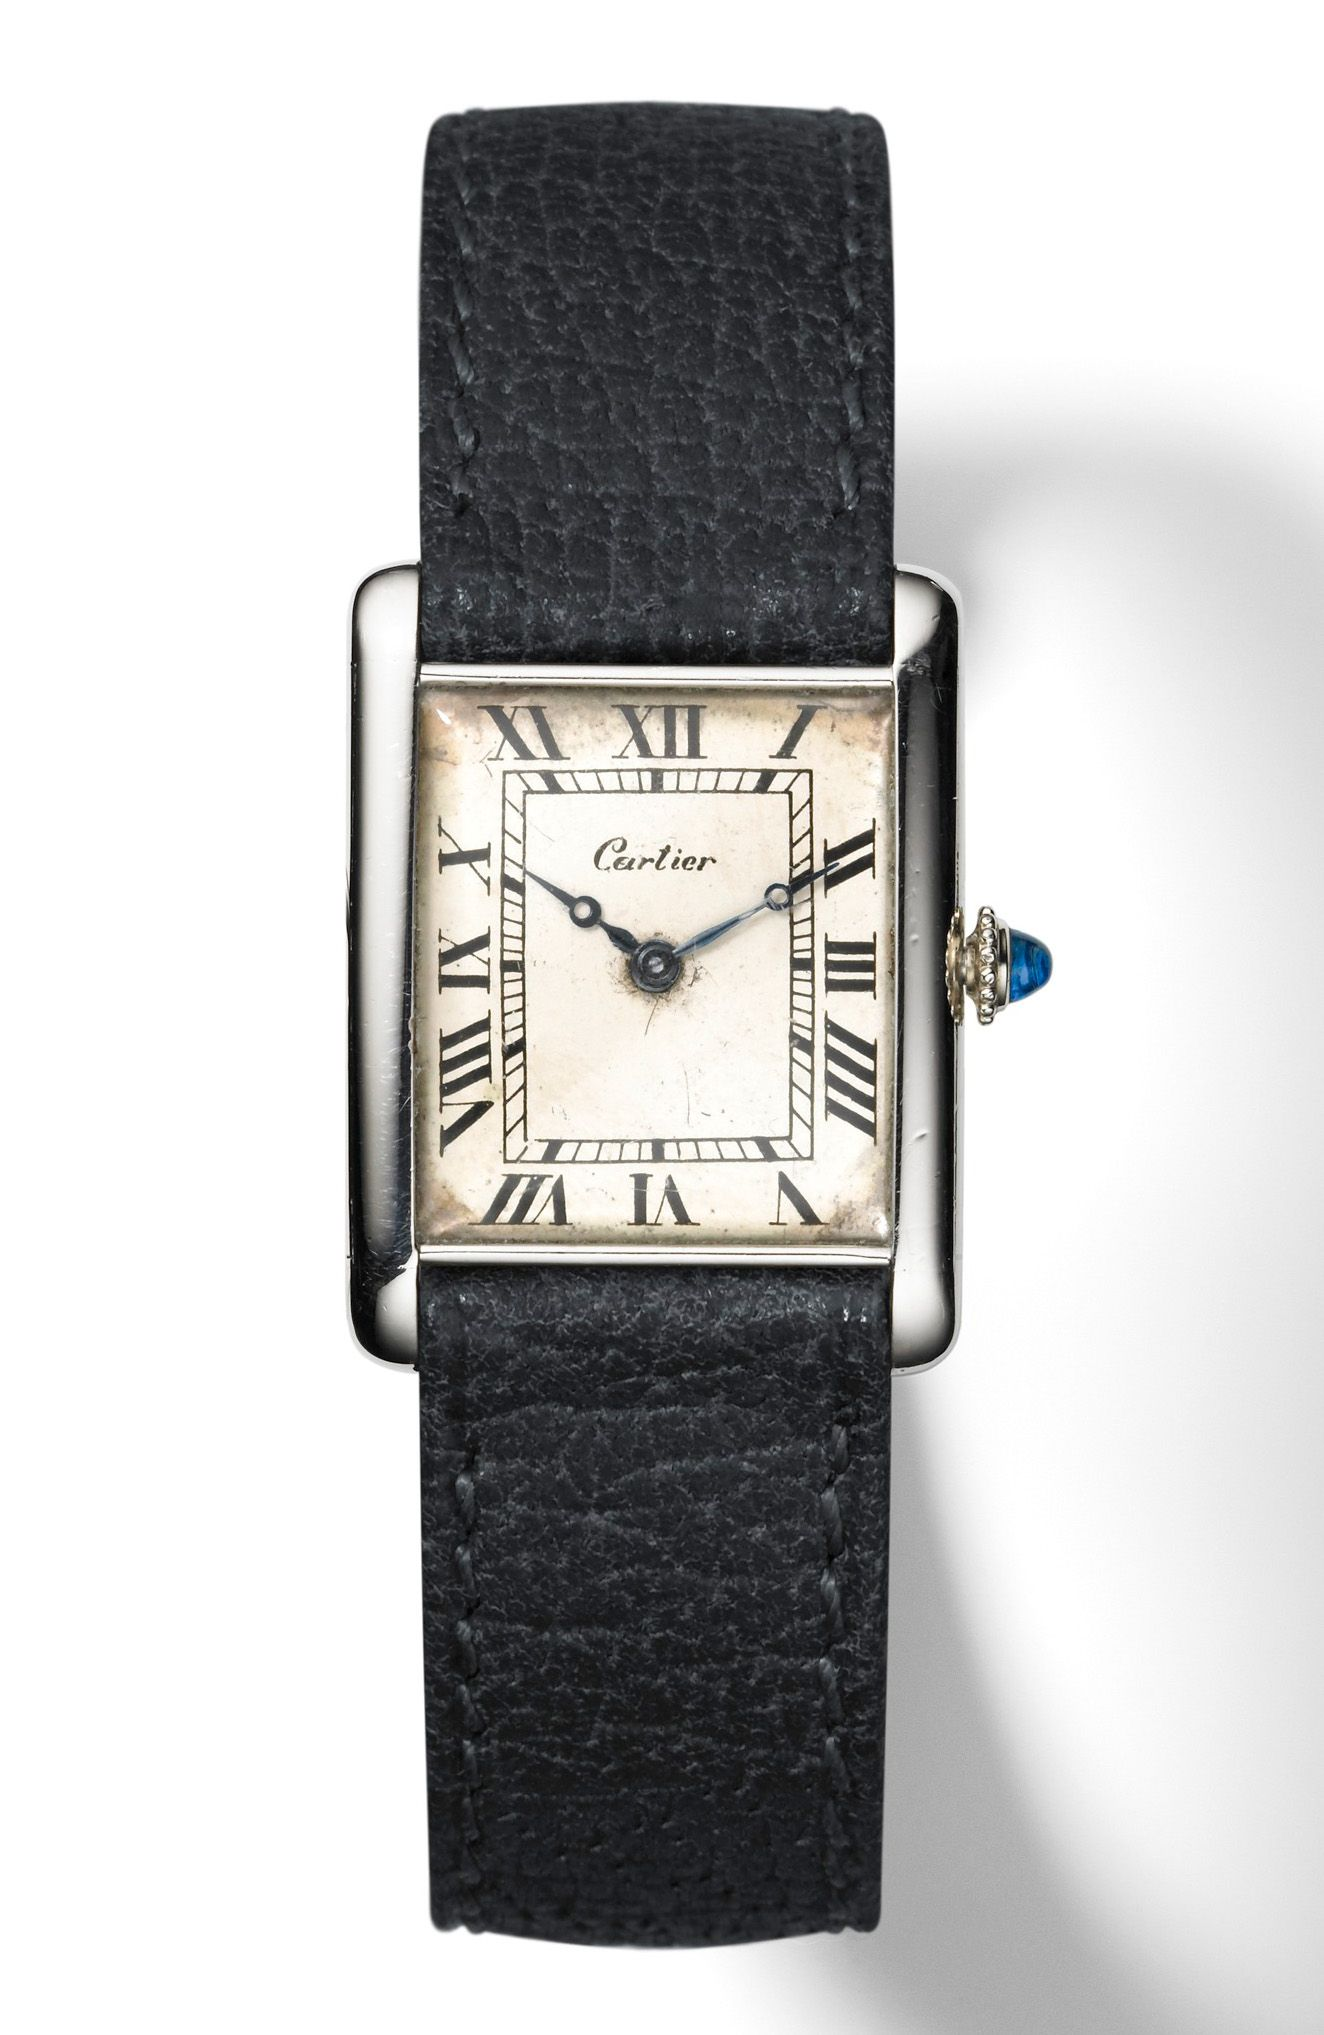 Tank Louis Cartier Wristwatch Cartier 1925 Cartier Tank Watches For Men Vintage Watches